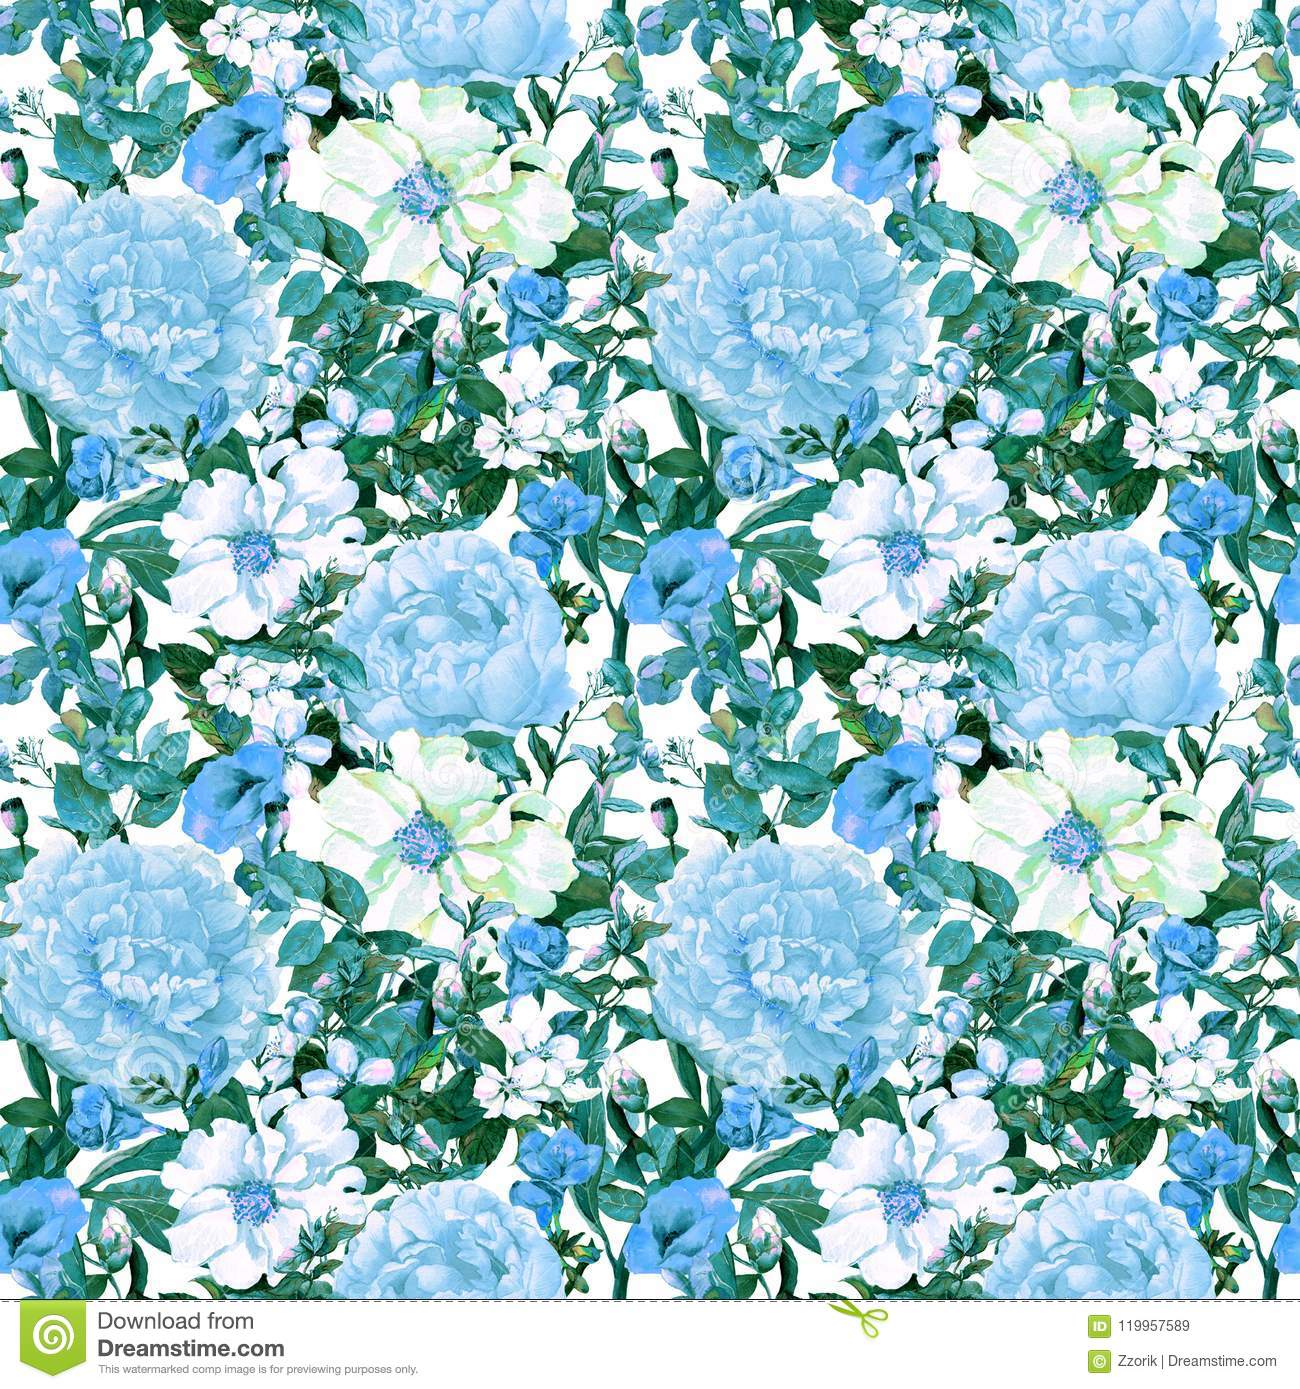 Flowers, leaves, wild grass. Repeating floral pattern in blue color. Watercolor